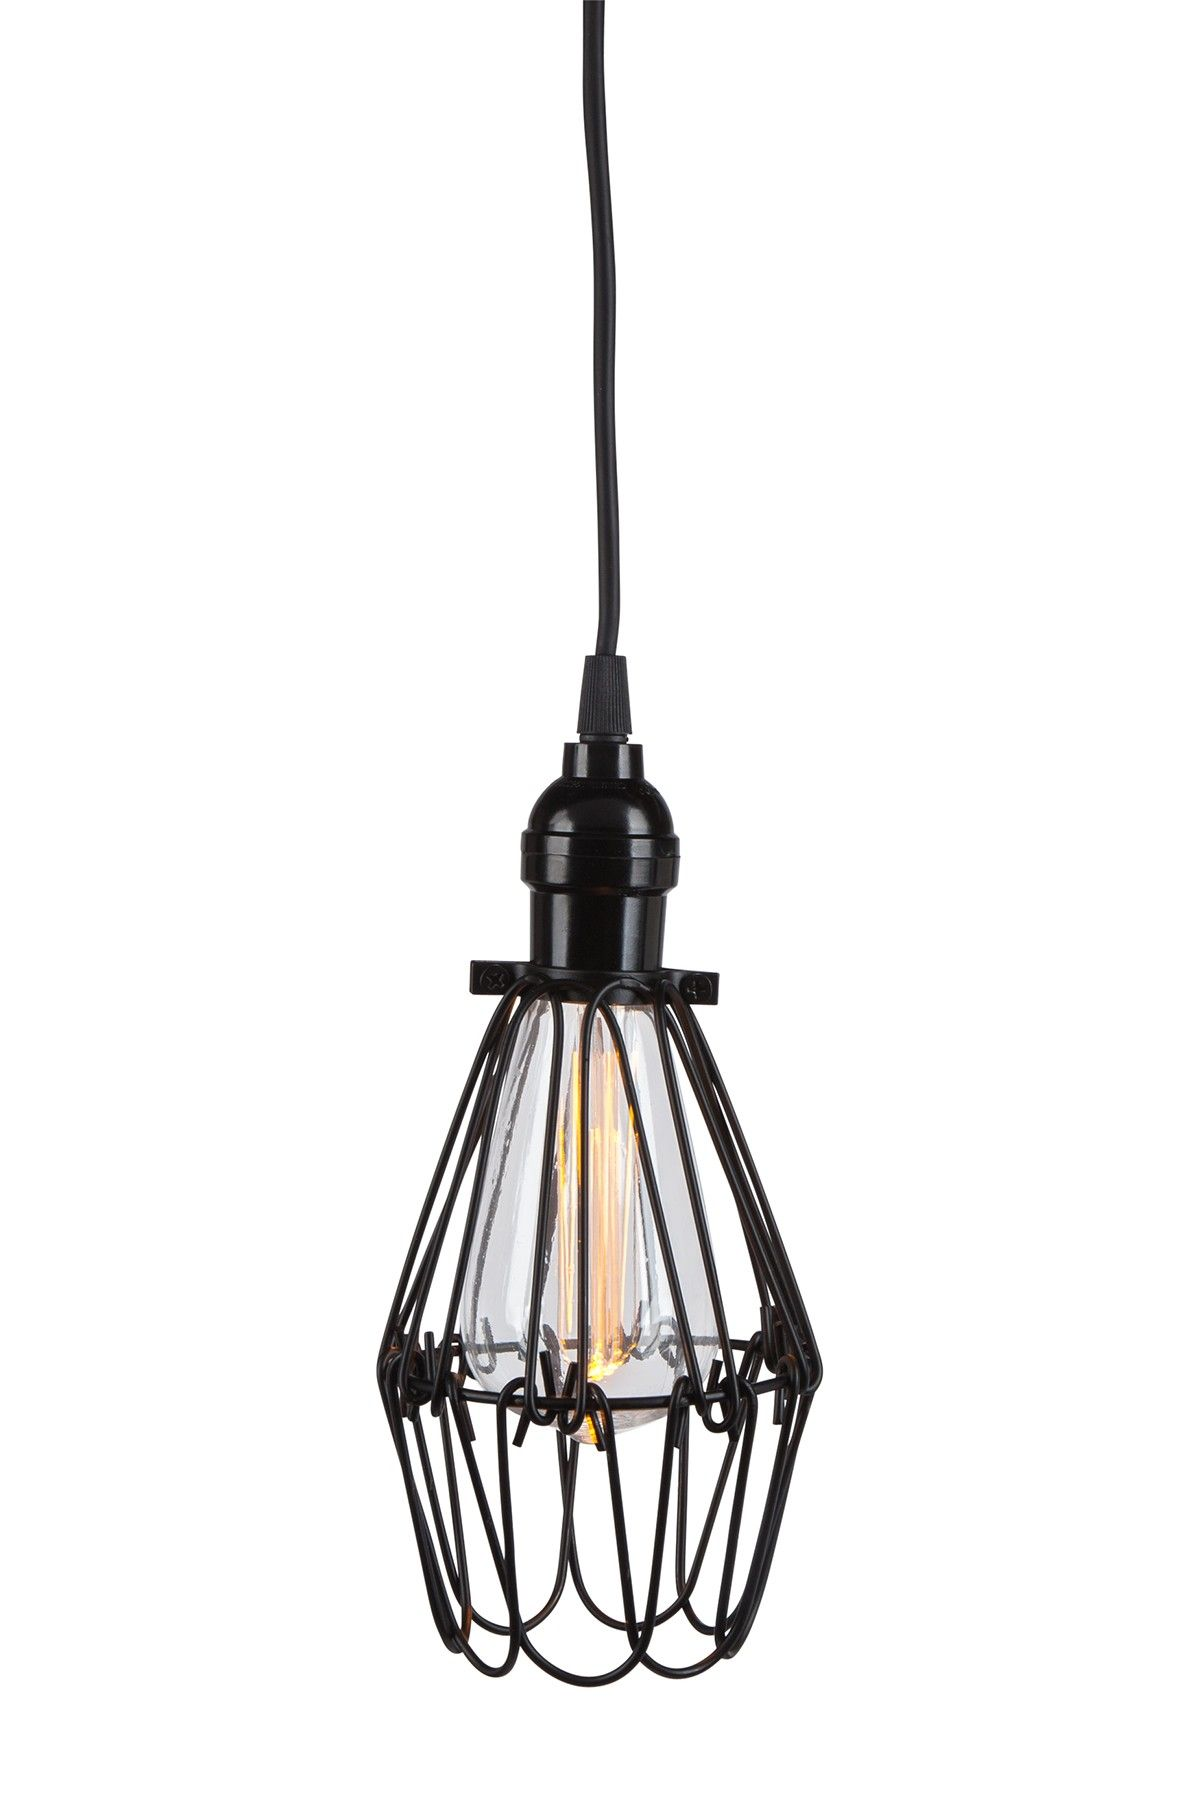 Black Oblong Metal Cage Battery Operated Pendant Light With St64 Edison Led Bulb By Gerson Company On Hautelook